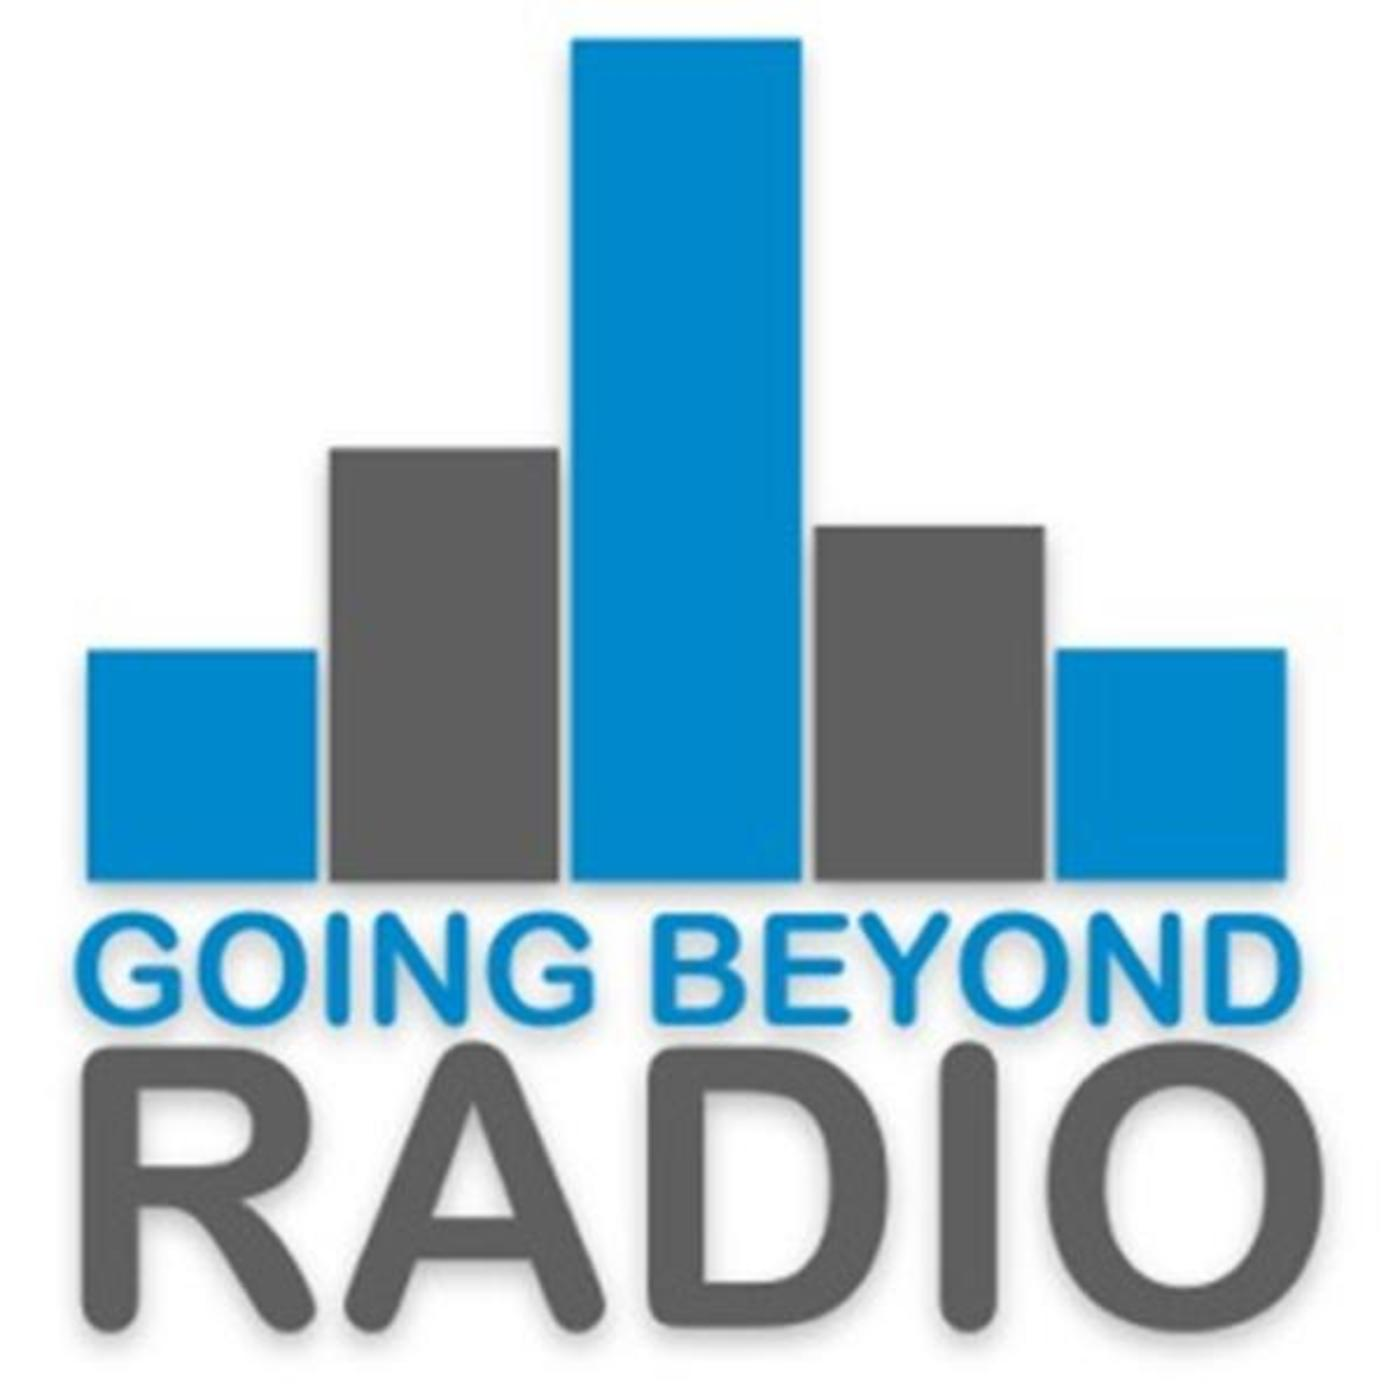 Going Beyond Radio